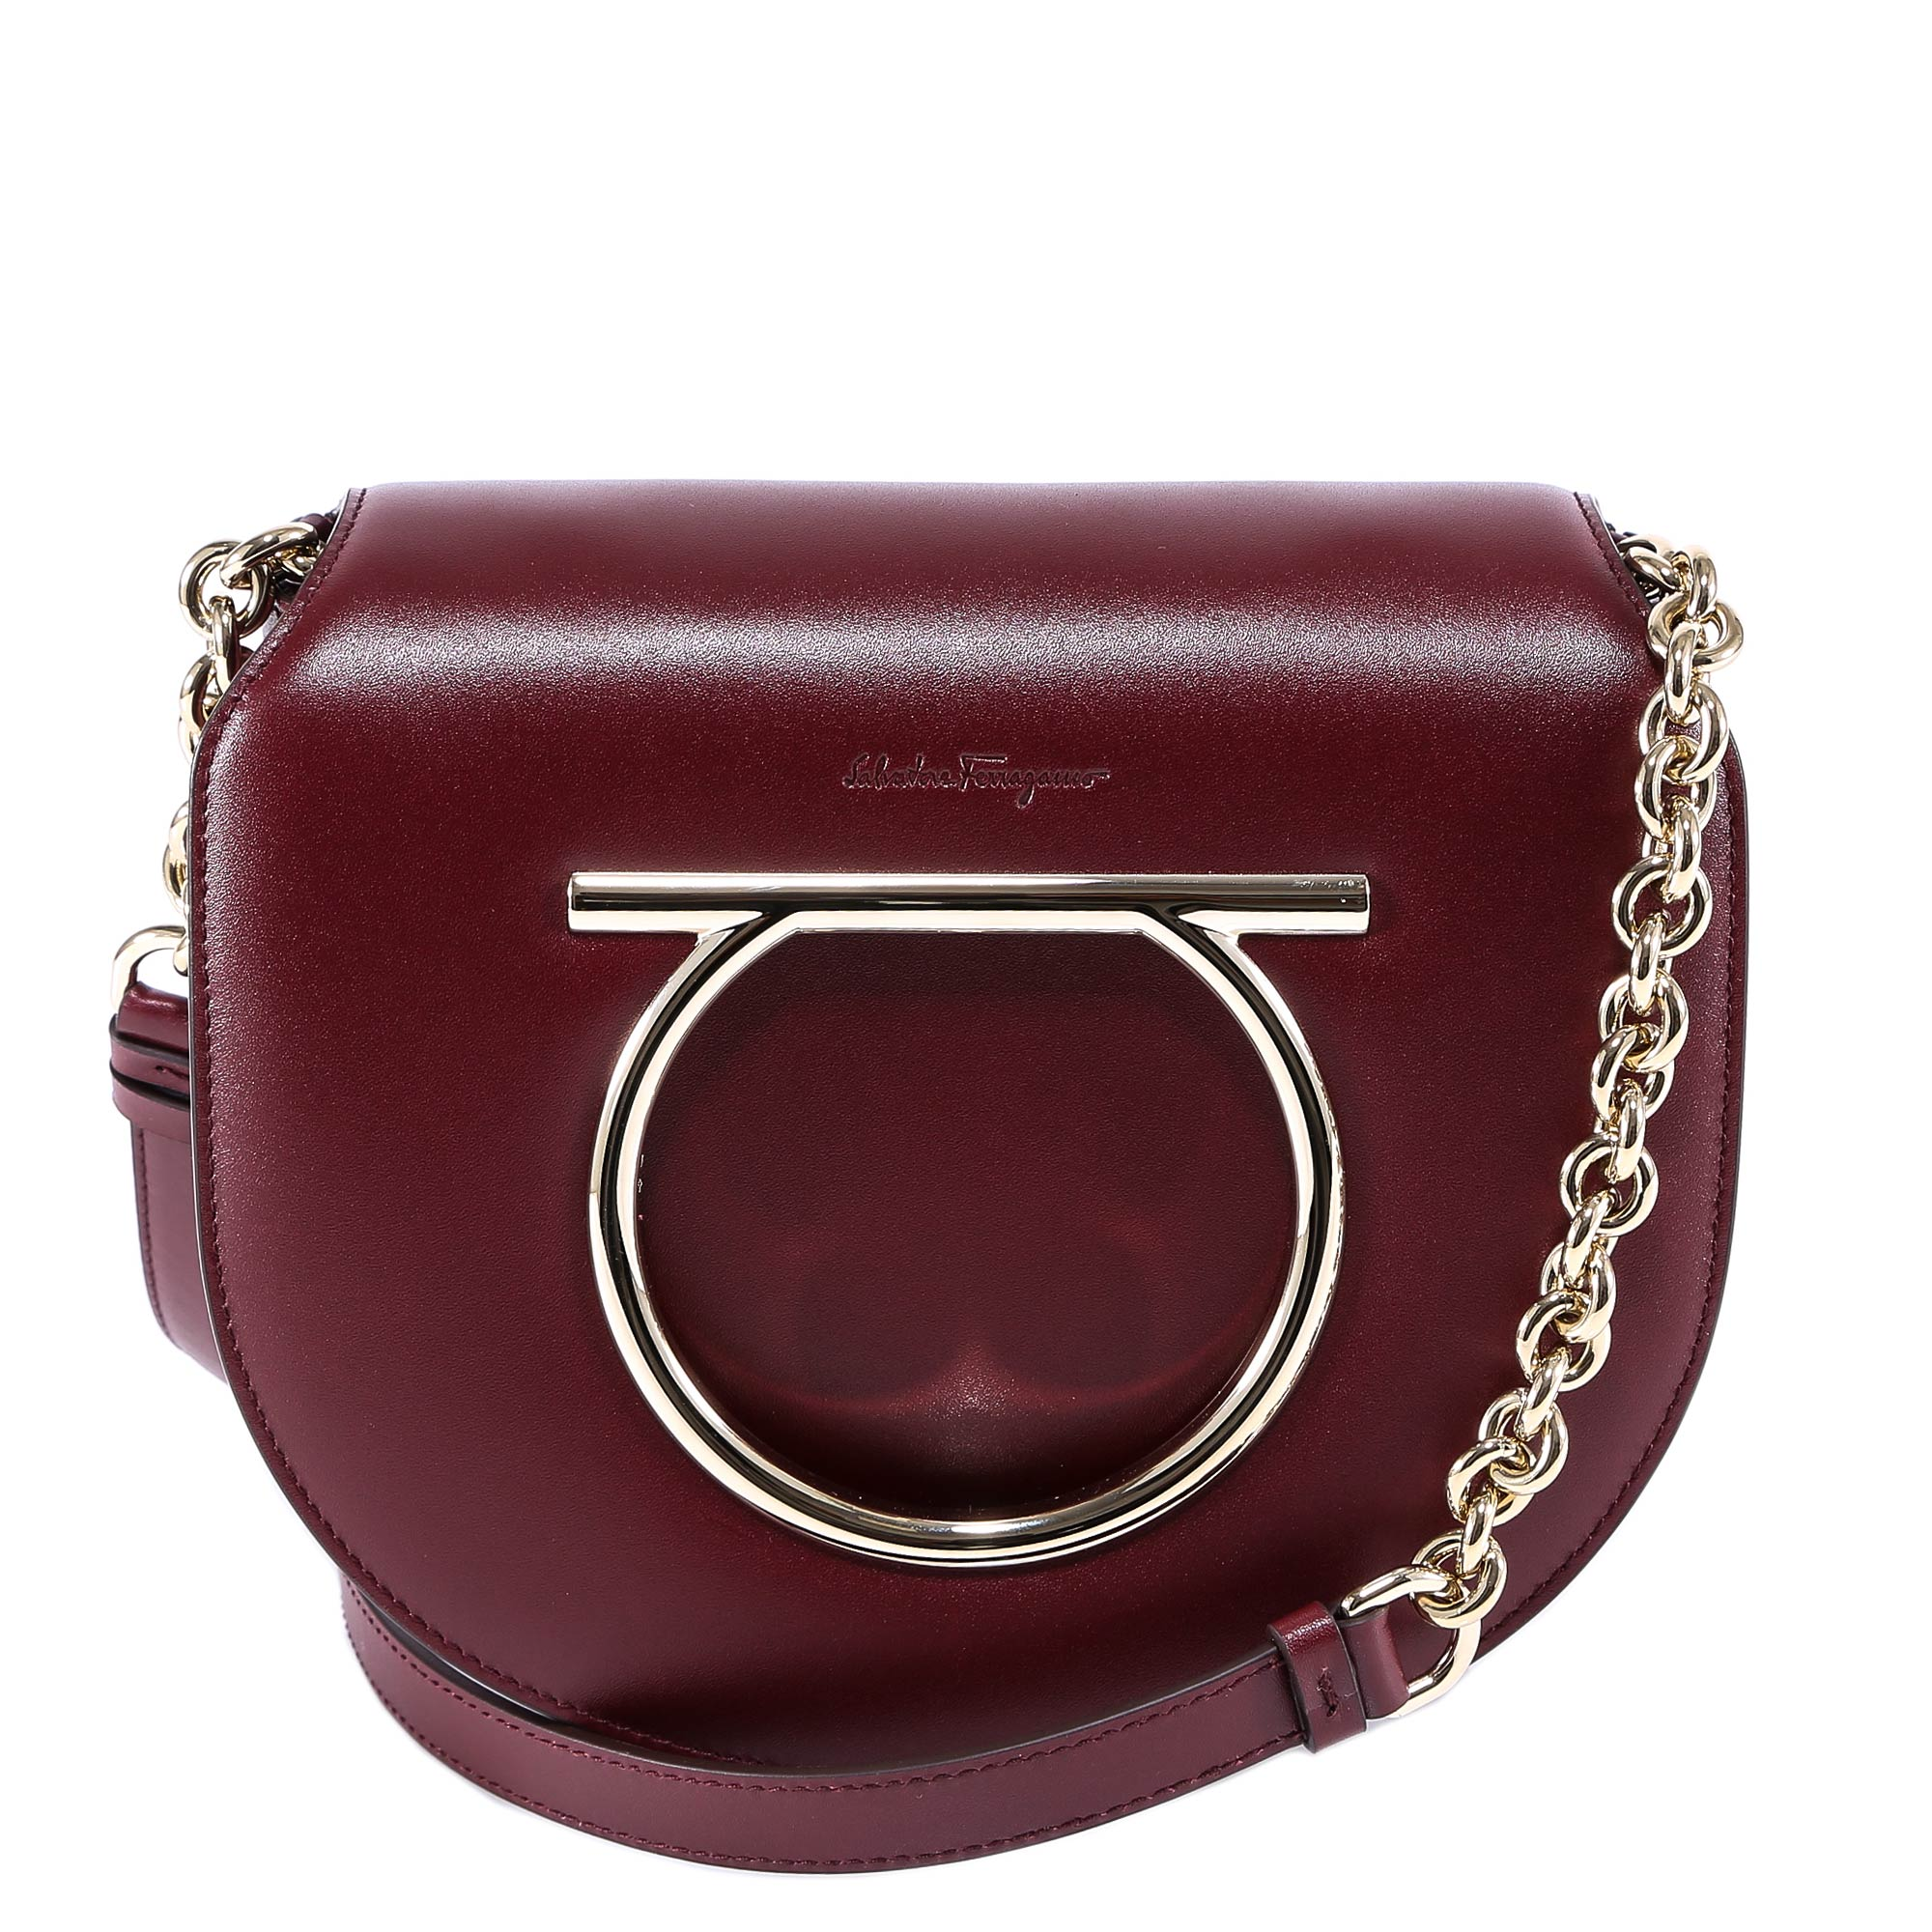 SALVATORE FERRAGAMO FLAP SADDLE BAG